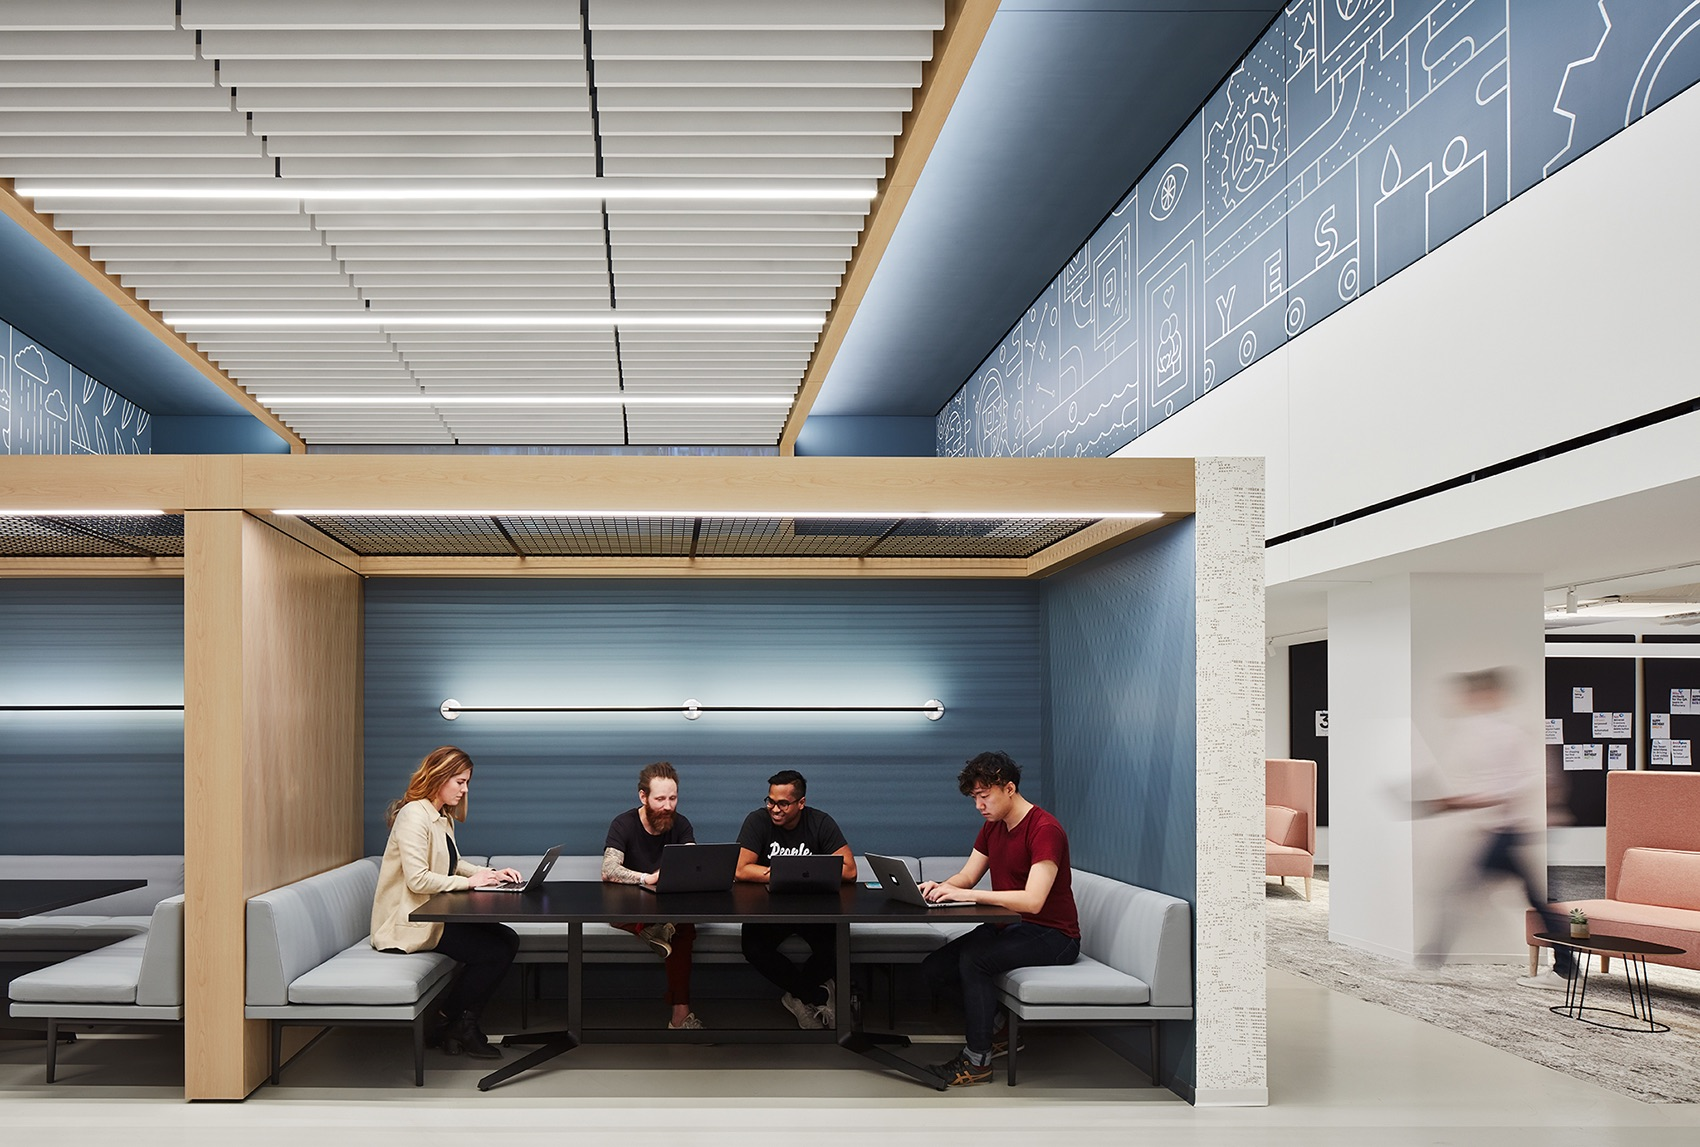 dscout-chicago-office-5